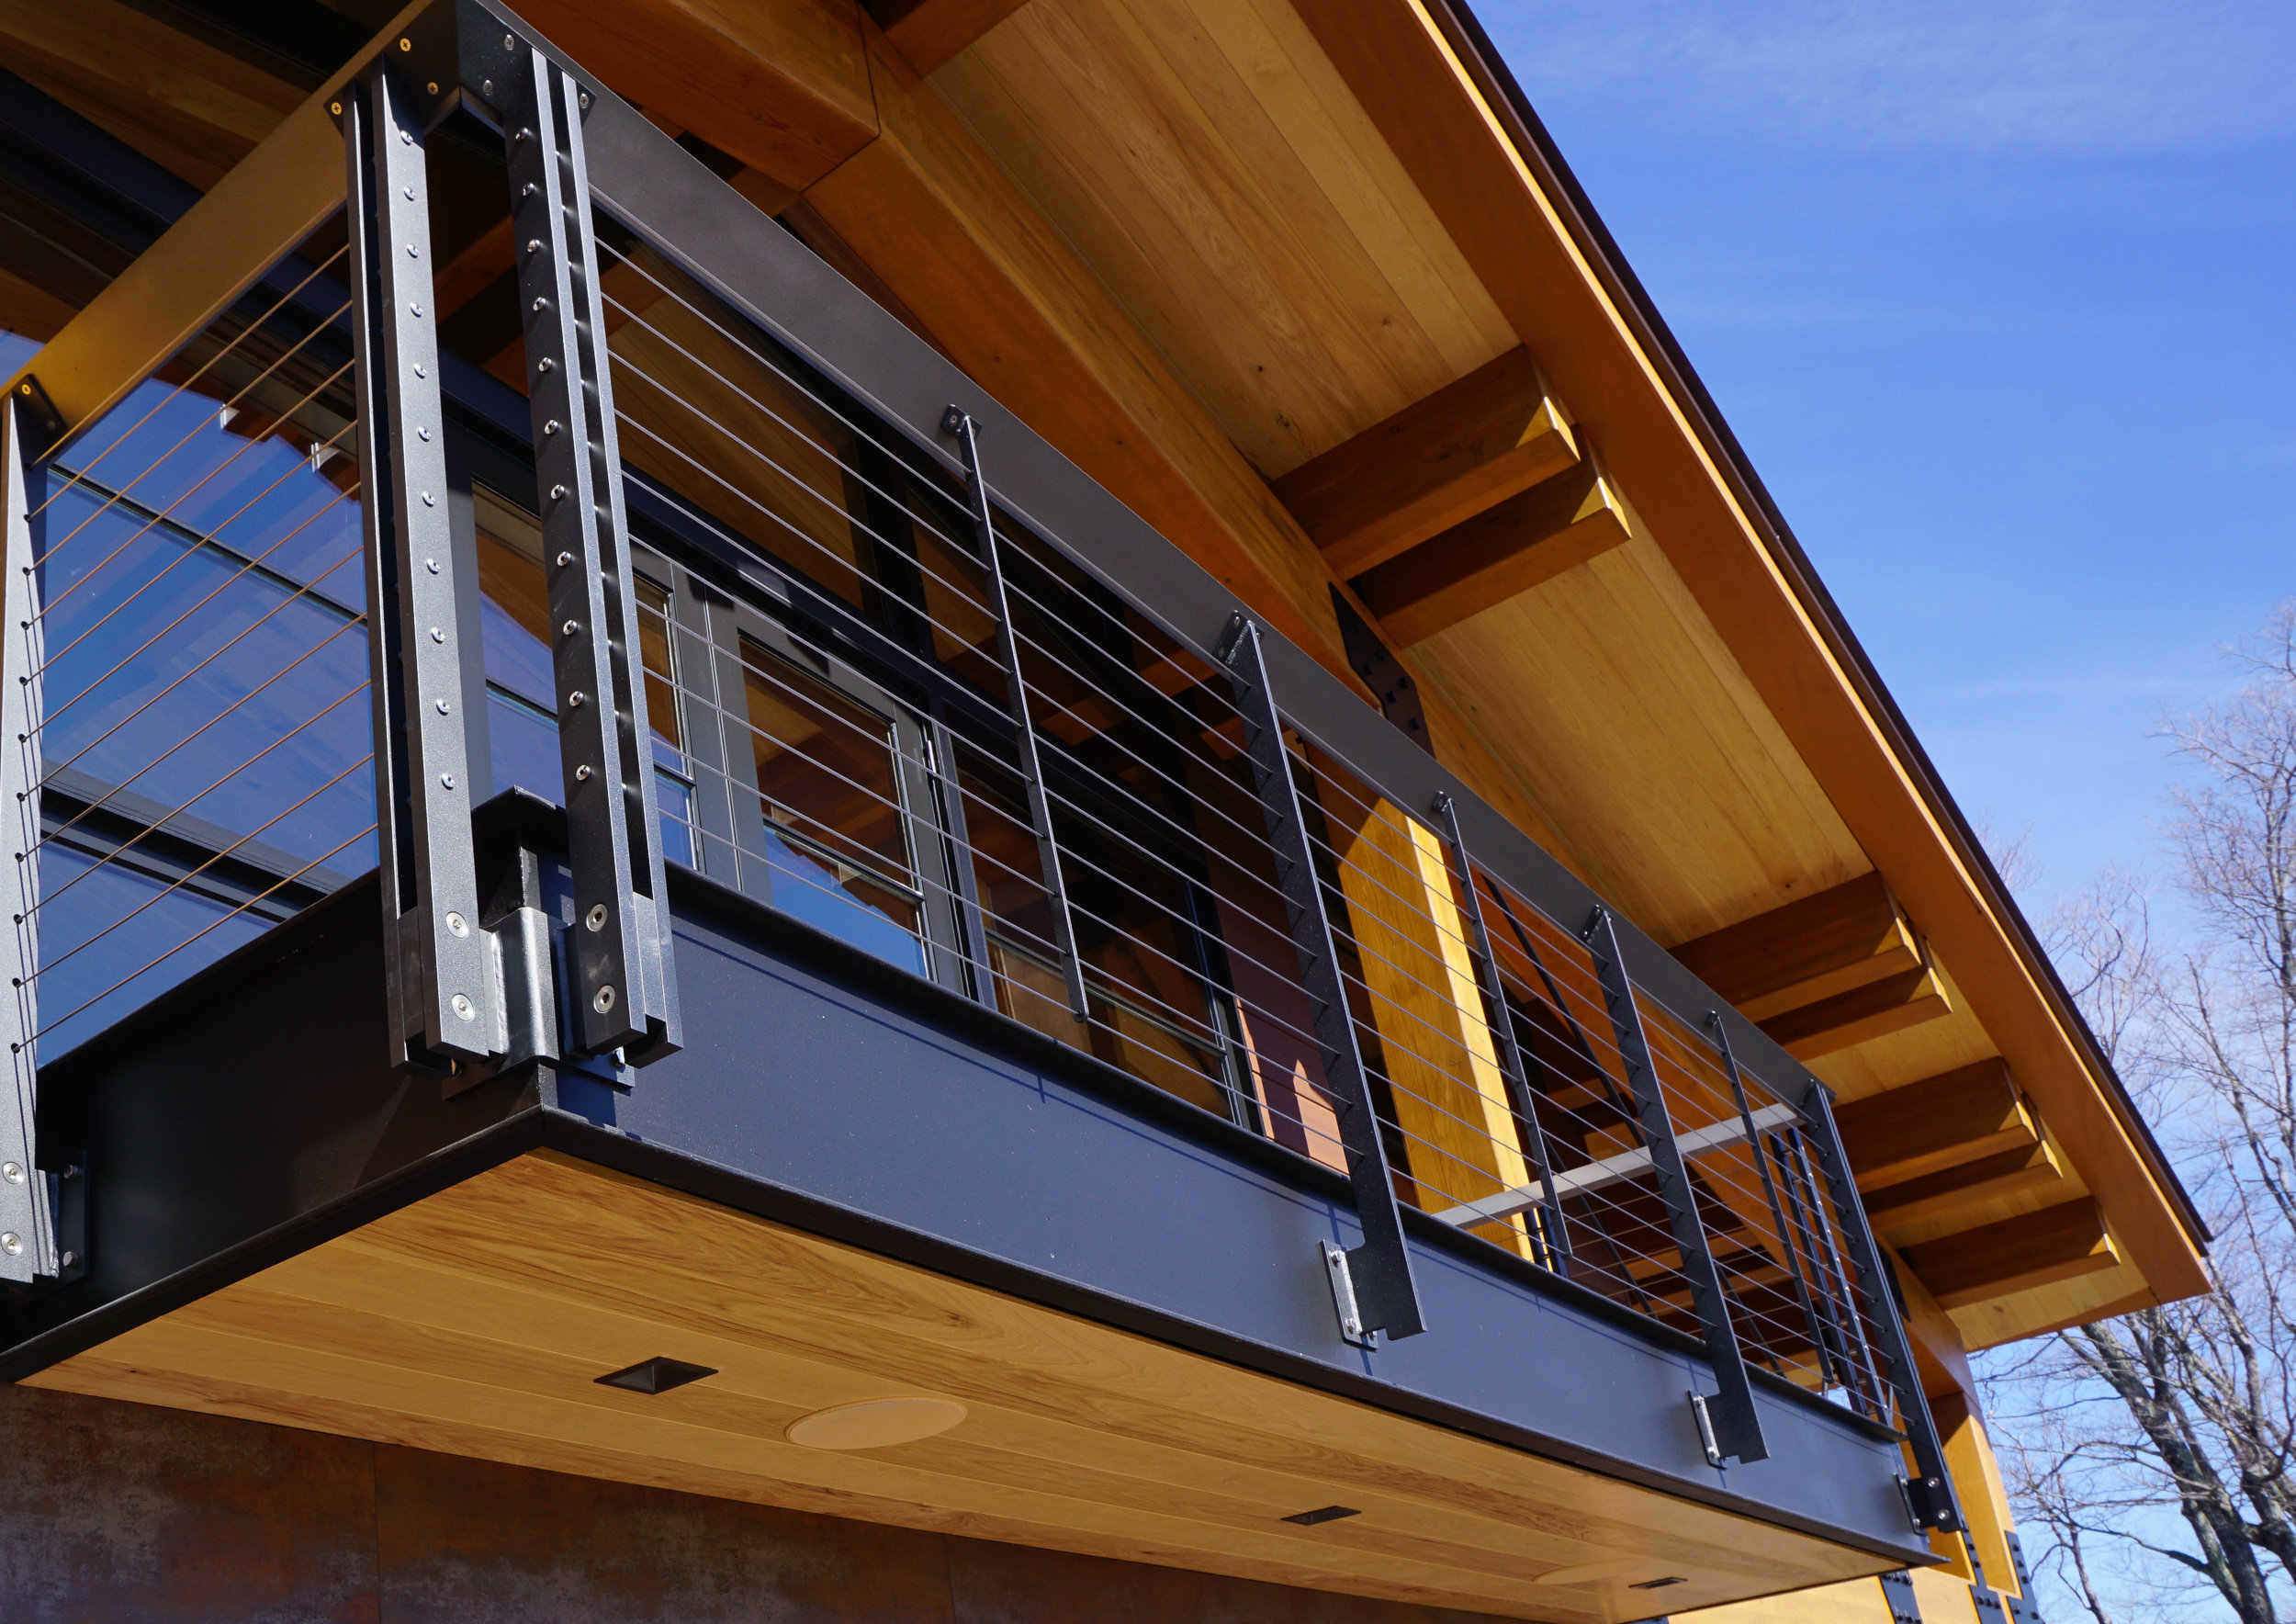 Custom fascia-mounted cable railing on timber frame home